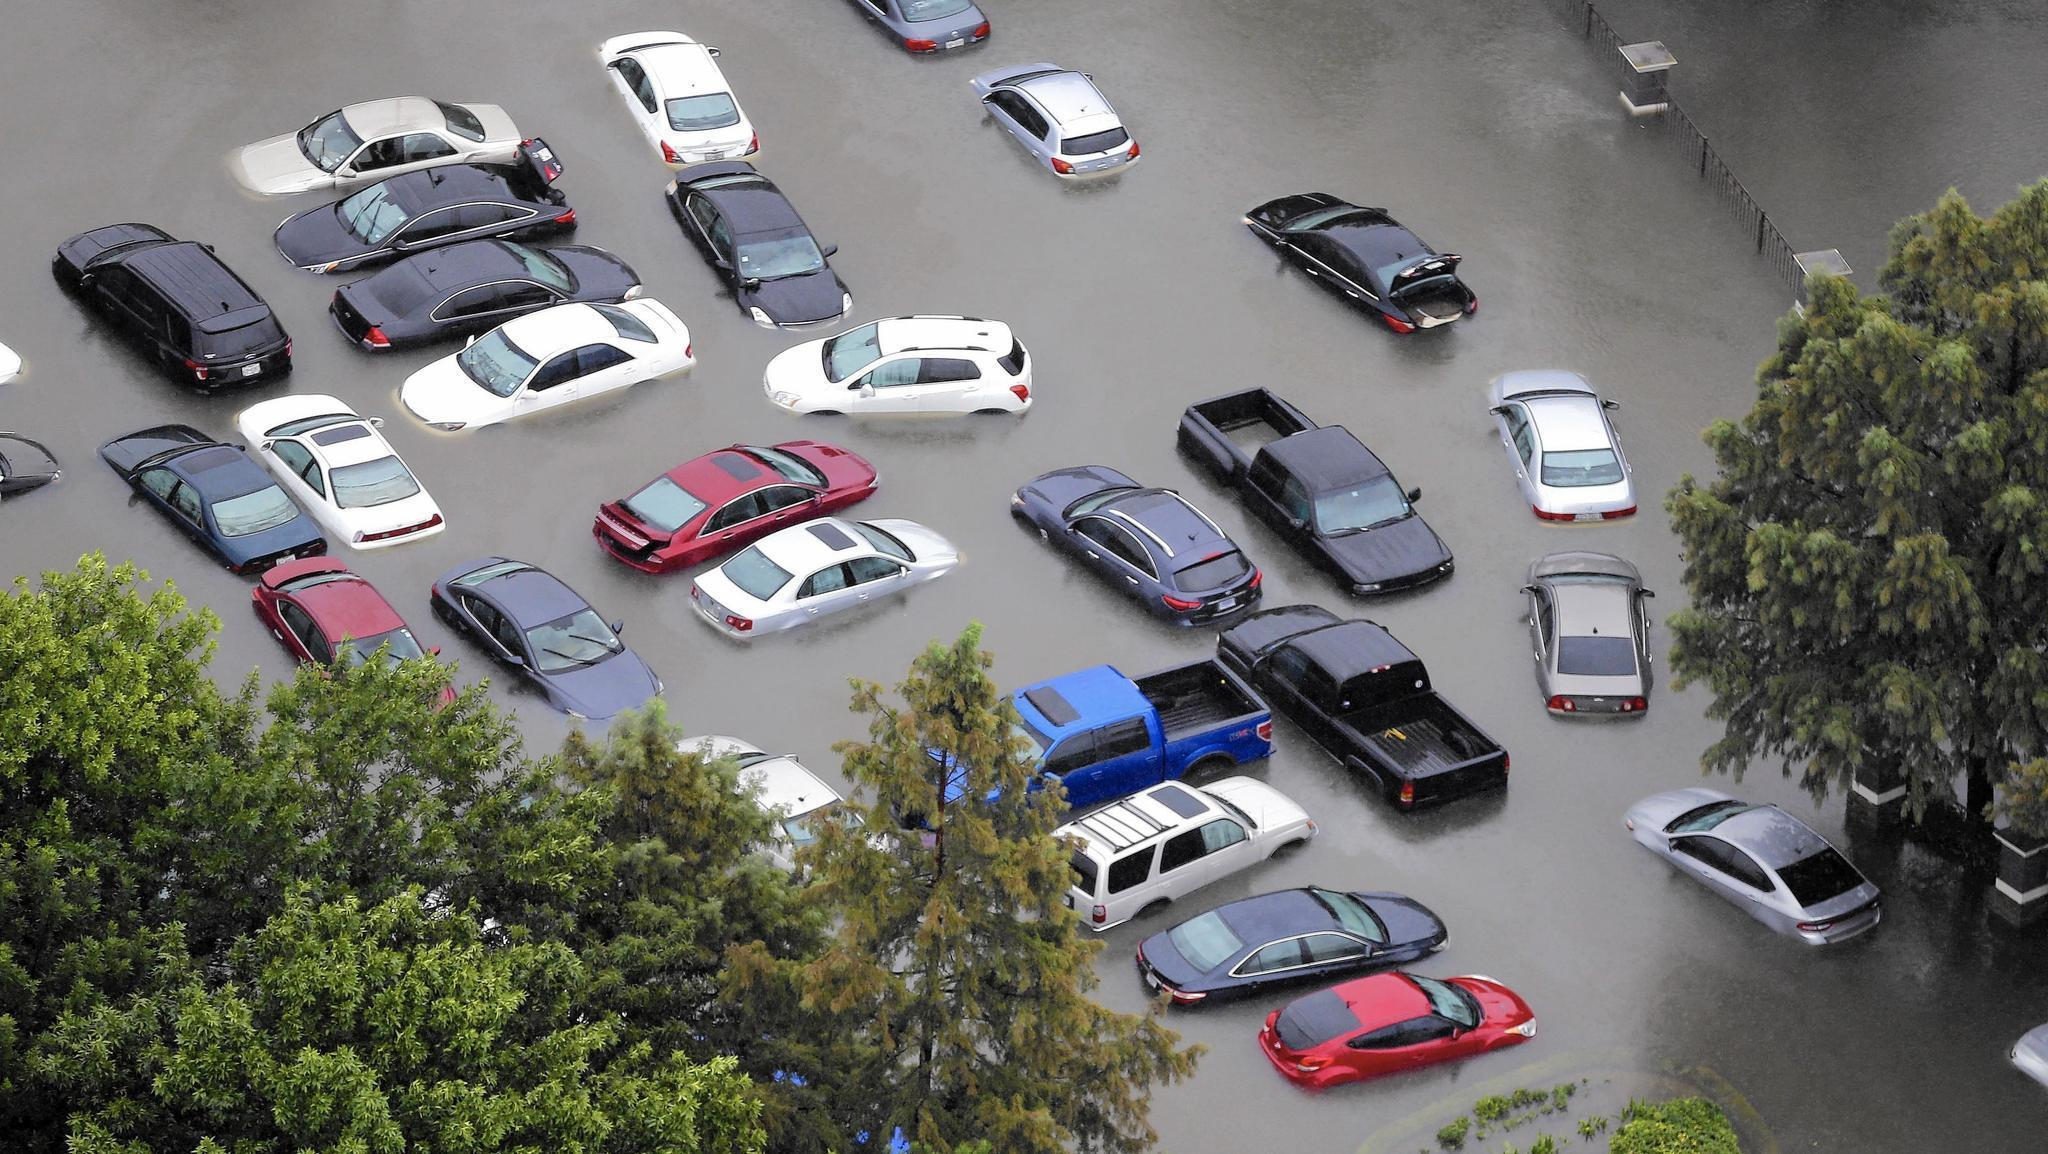 Car Fax Used Cars >> After hurricanes, flood of storm-damaged cars heading for market - Chicago Tribune